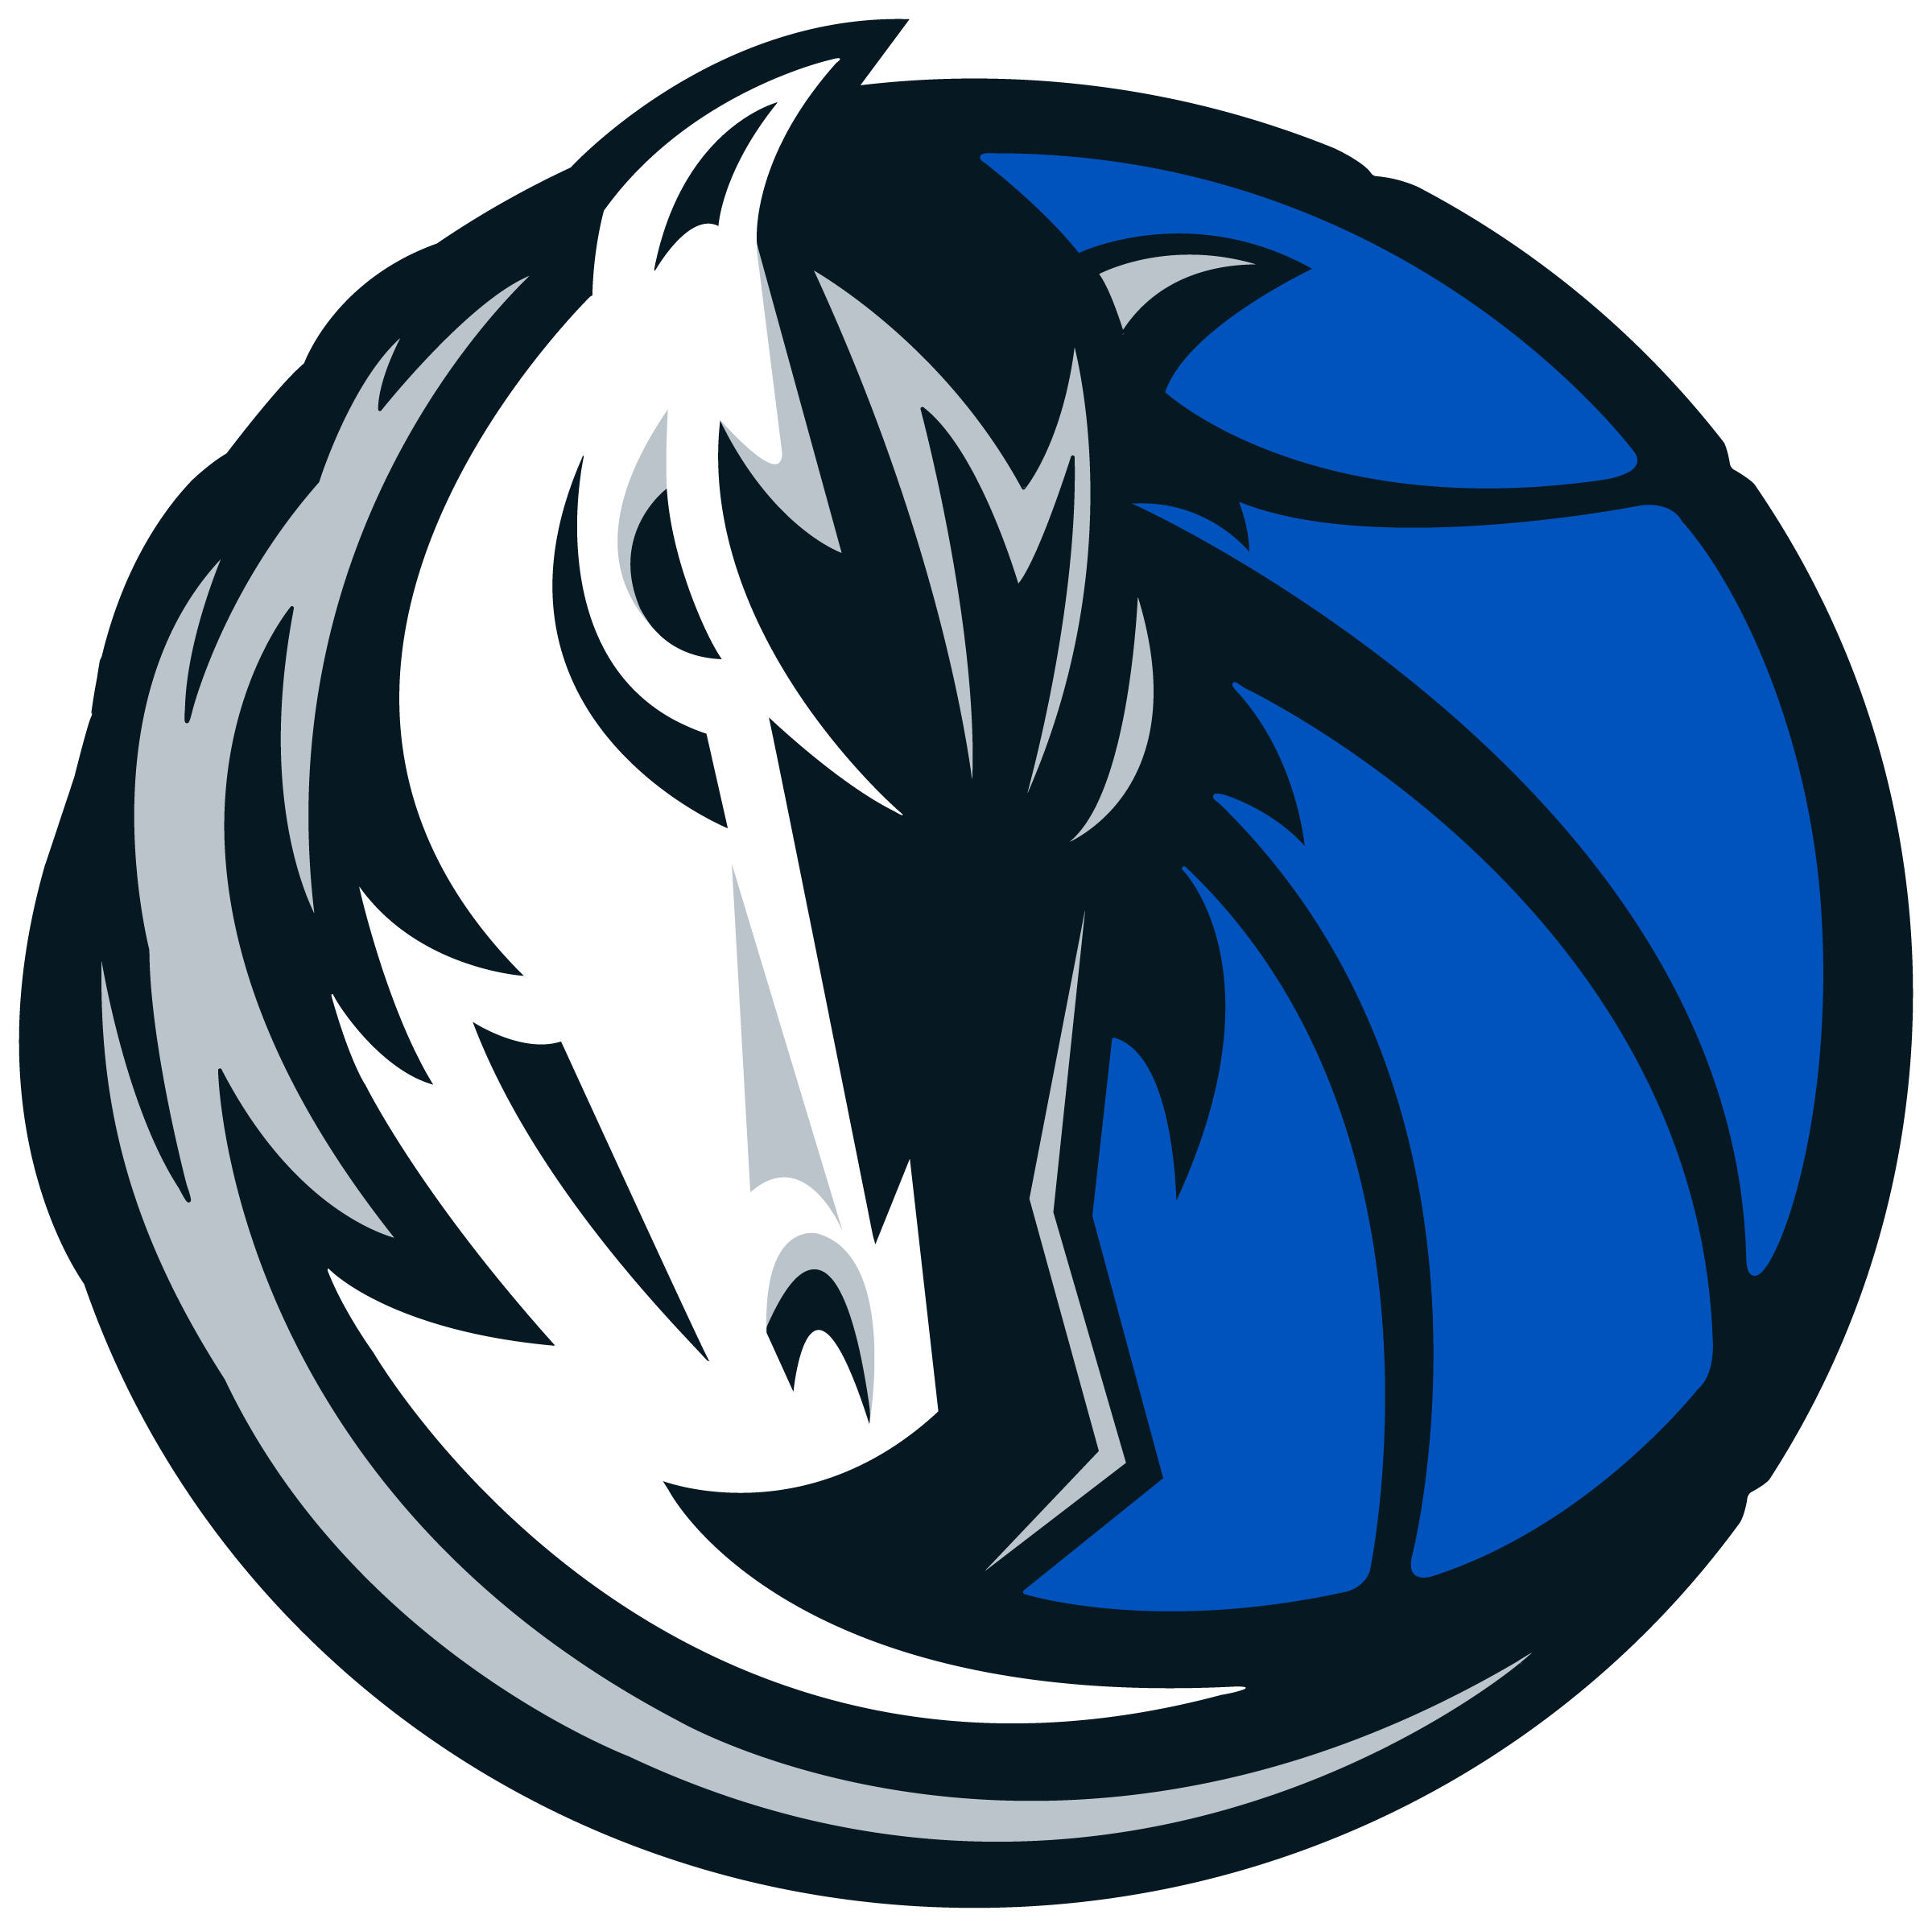 Dallas Mavericks New Life Behavior International Golf Gift Sponsor